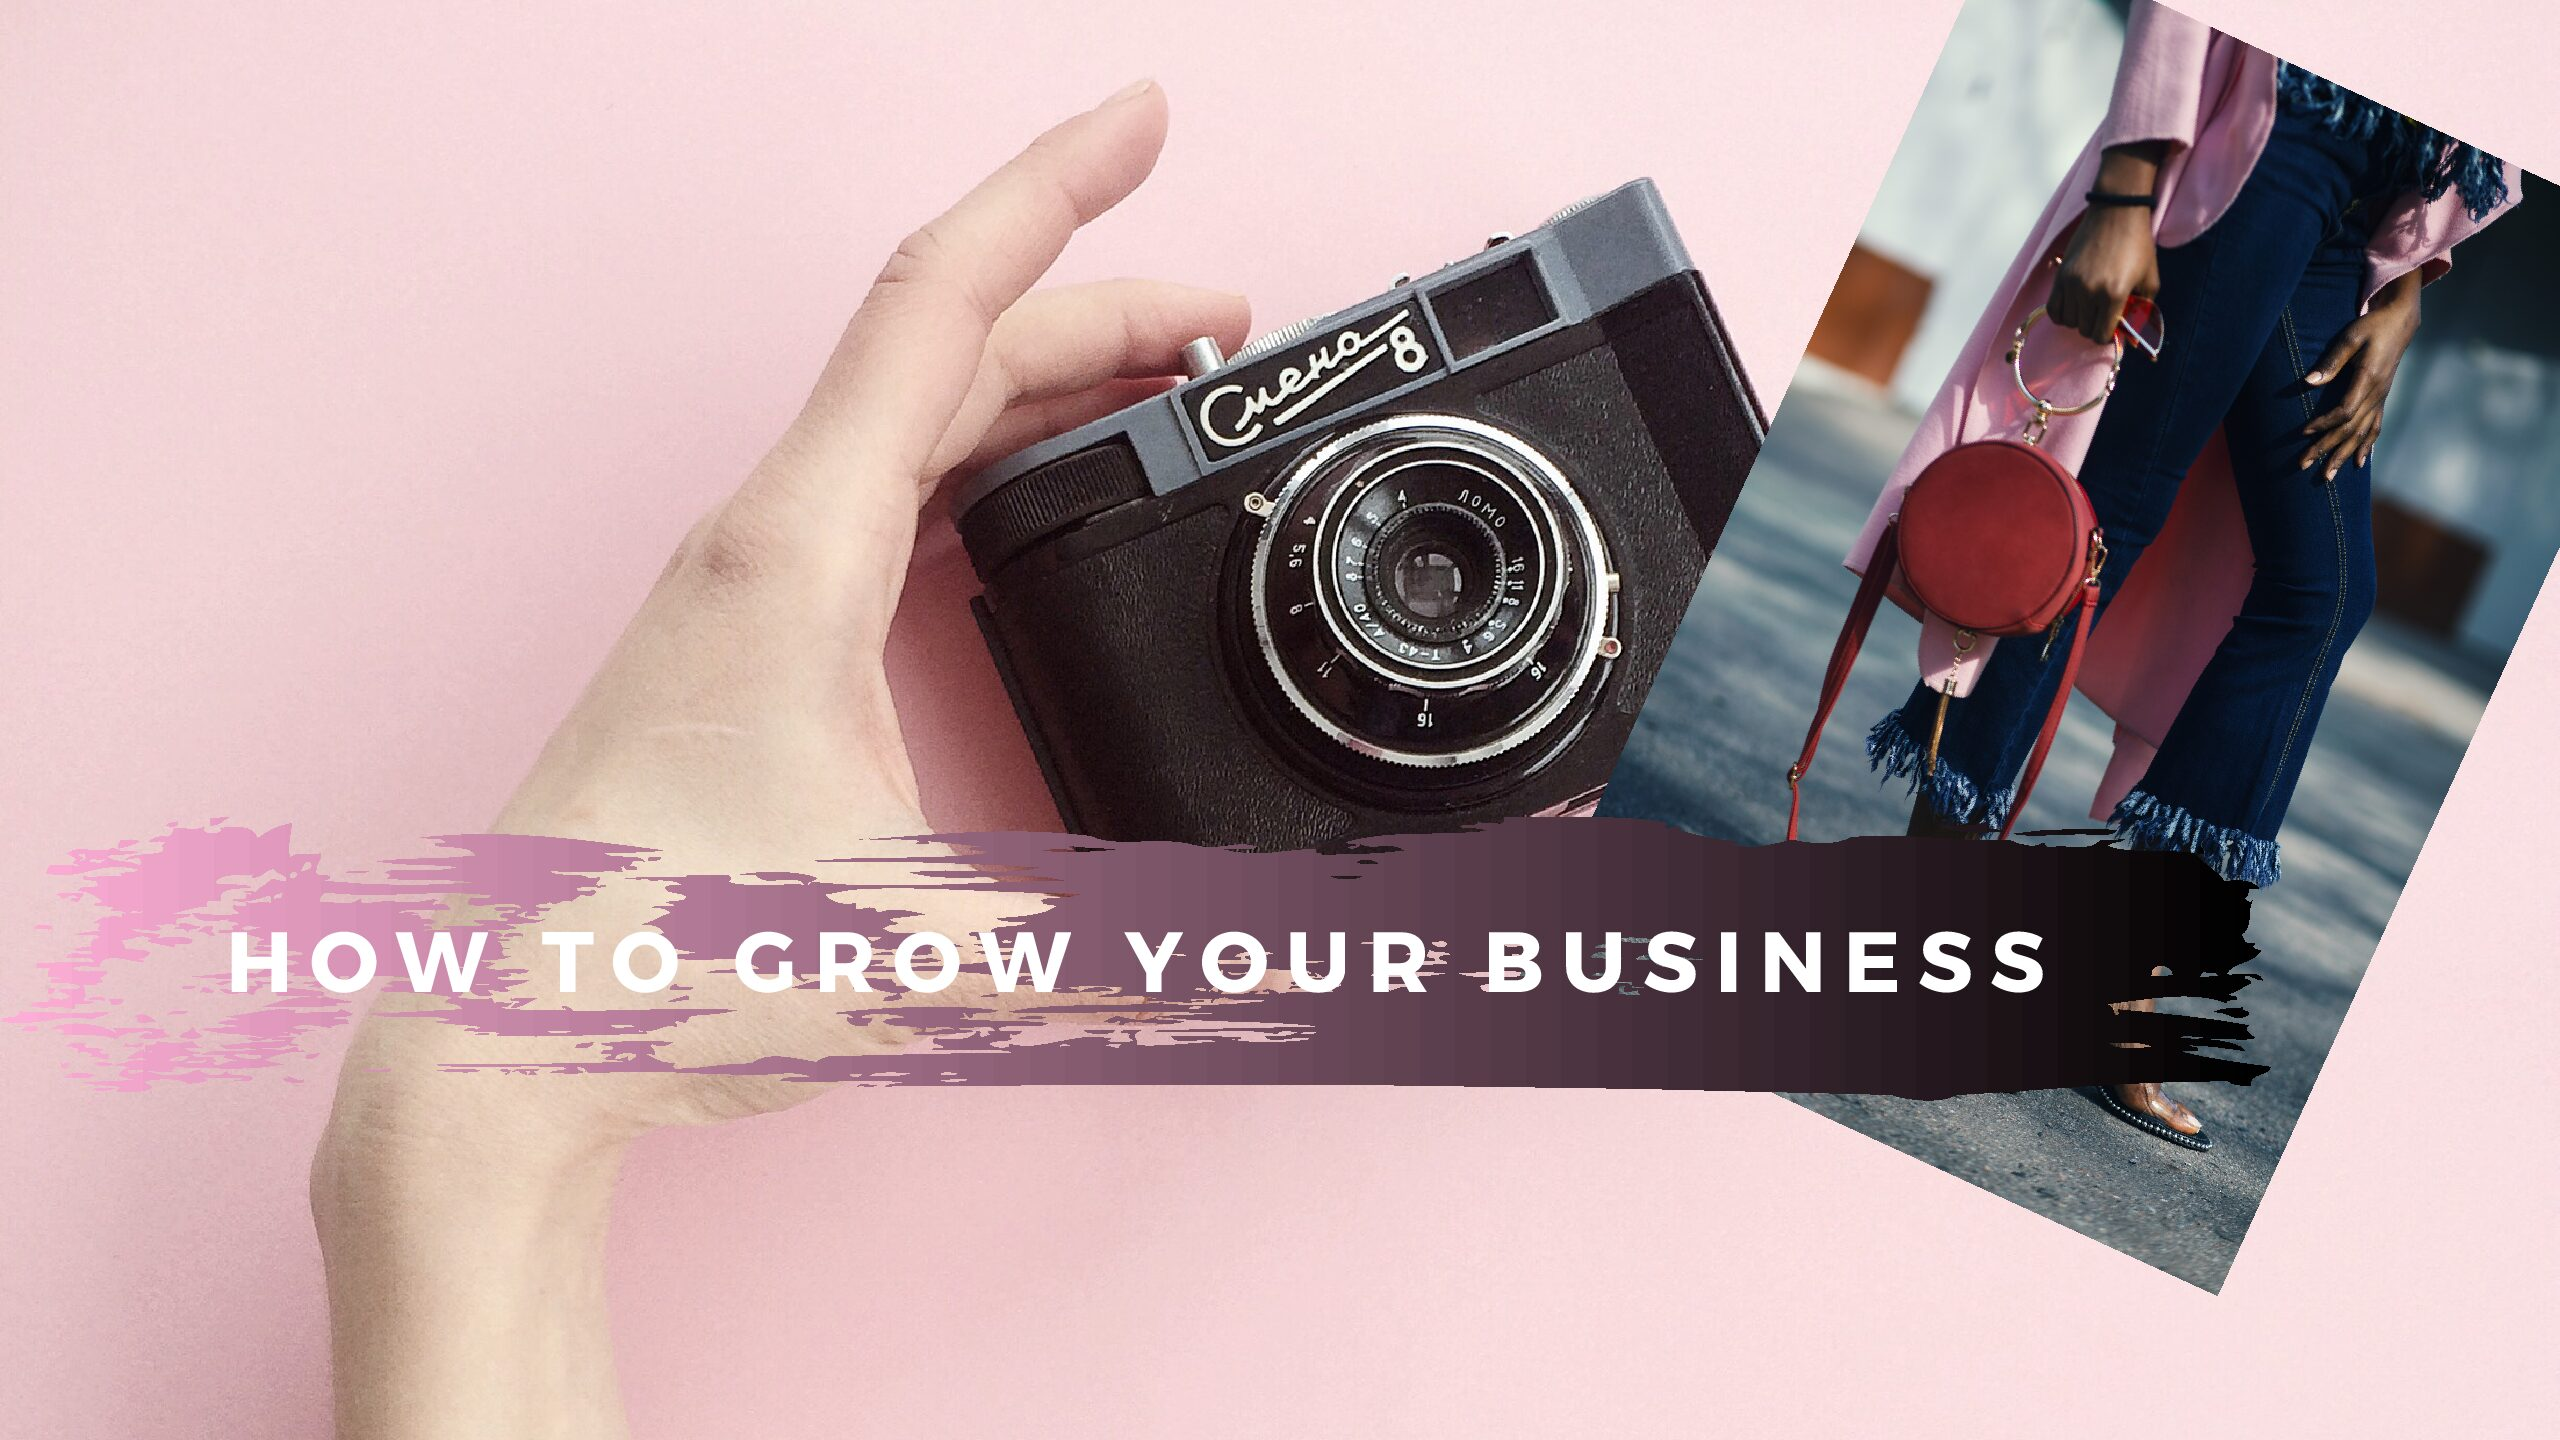 7 Successful Ways To Grow Your Business In 6 Months or Less